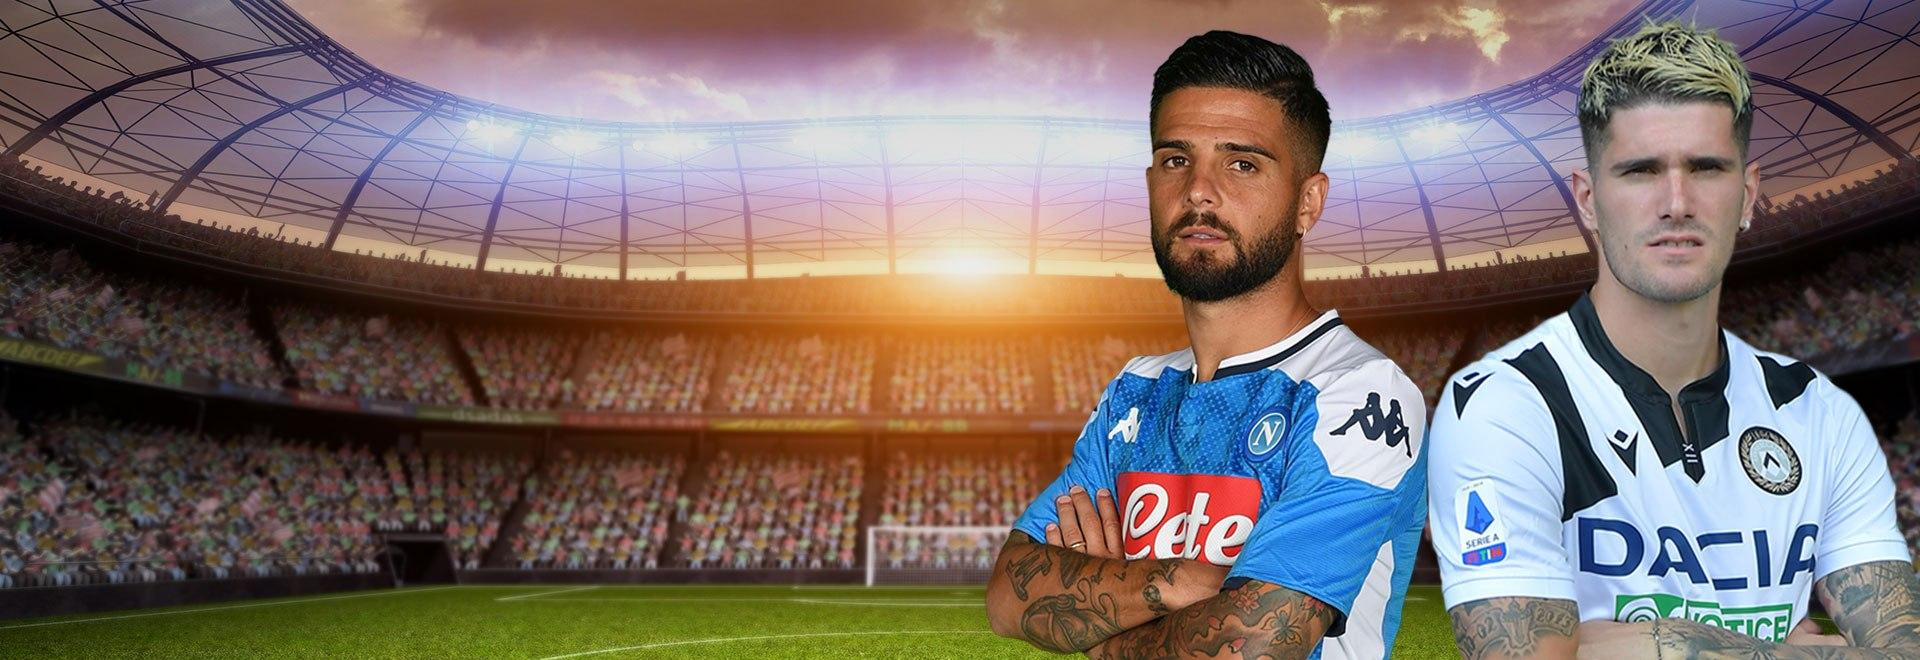 Napoli - Udinese. 34a g.